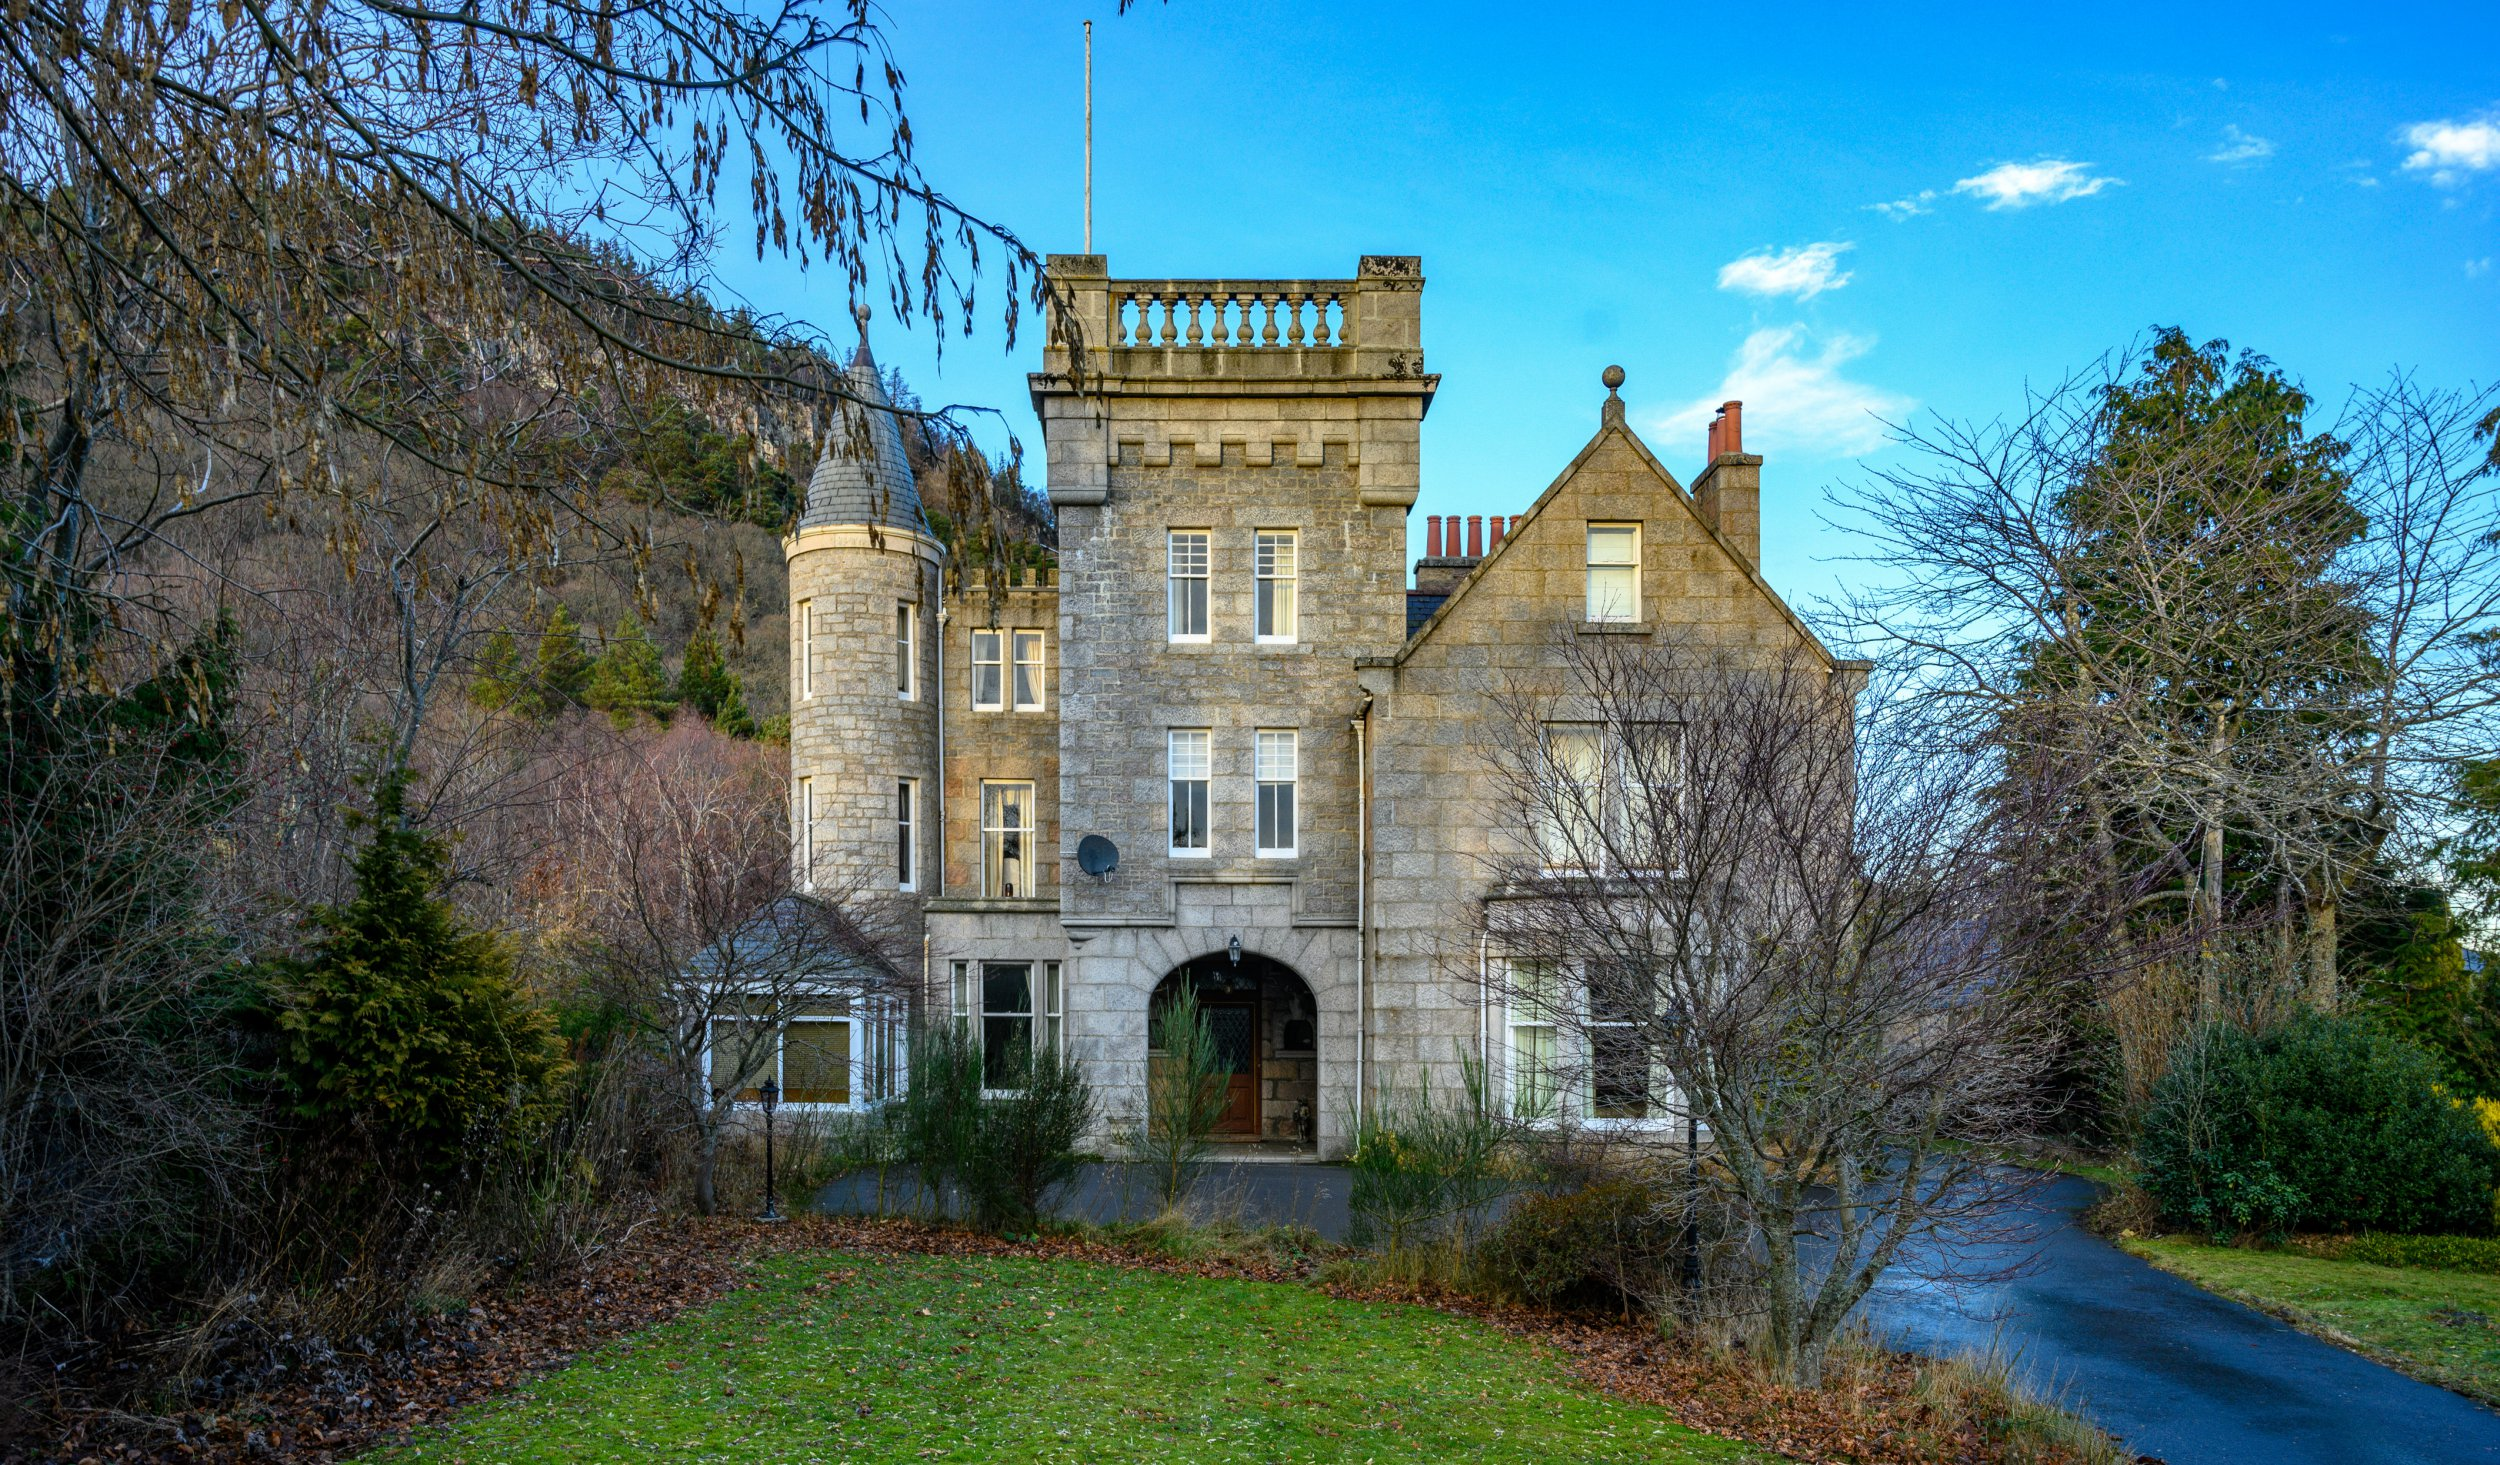 MERCURY PRESS. Aberdeenshire, UK. 11/3/19. Pictured: Craigendarroch House in Aberdeenshire. A Scottish property - neighbouring the Balmoral Estate owned by the royal family - has gone up for sale and its a spitting image of the monarchs favourite home. Craigendarroch House, a grand baronial style home in Ballater, Aberdeenshire neighbours Her Majestys favourite holiday home, Balmoral Castle - which happens to be on the same road as this magnificent property. Described as well-proportioned and versatile living accommodation estate agents claim that the house can be used as a unique family home or simply, a Scottish holiday retreat.' SEE MERCURY COPY